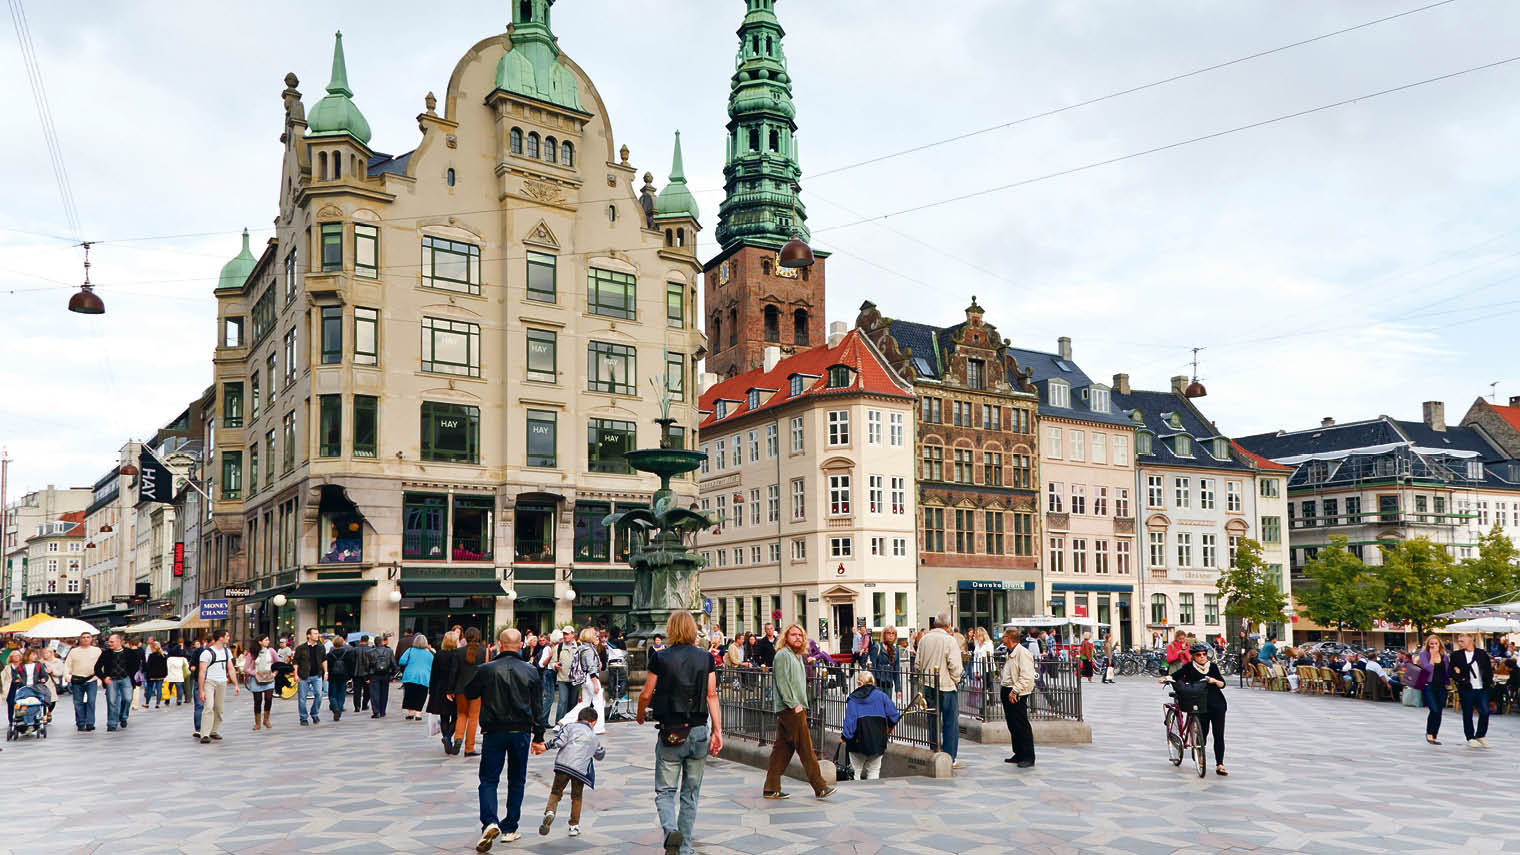 City in Denmark